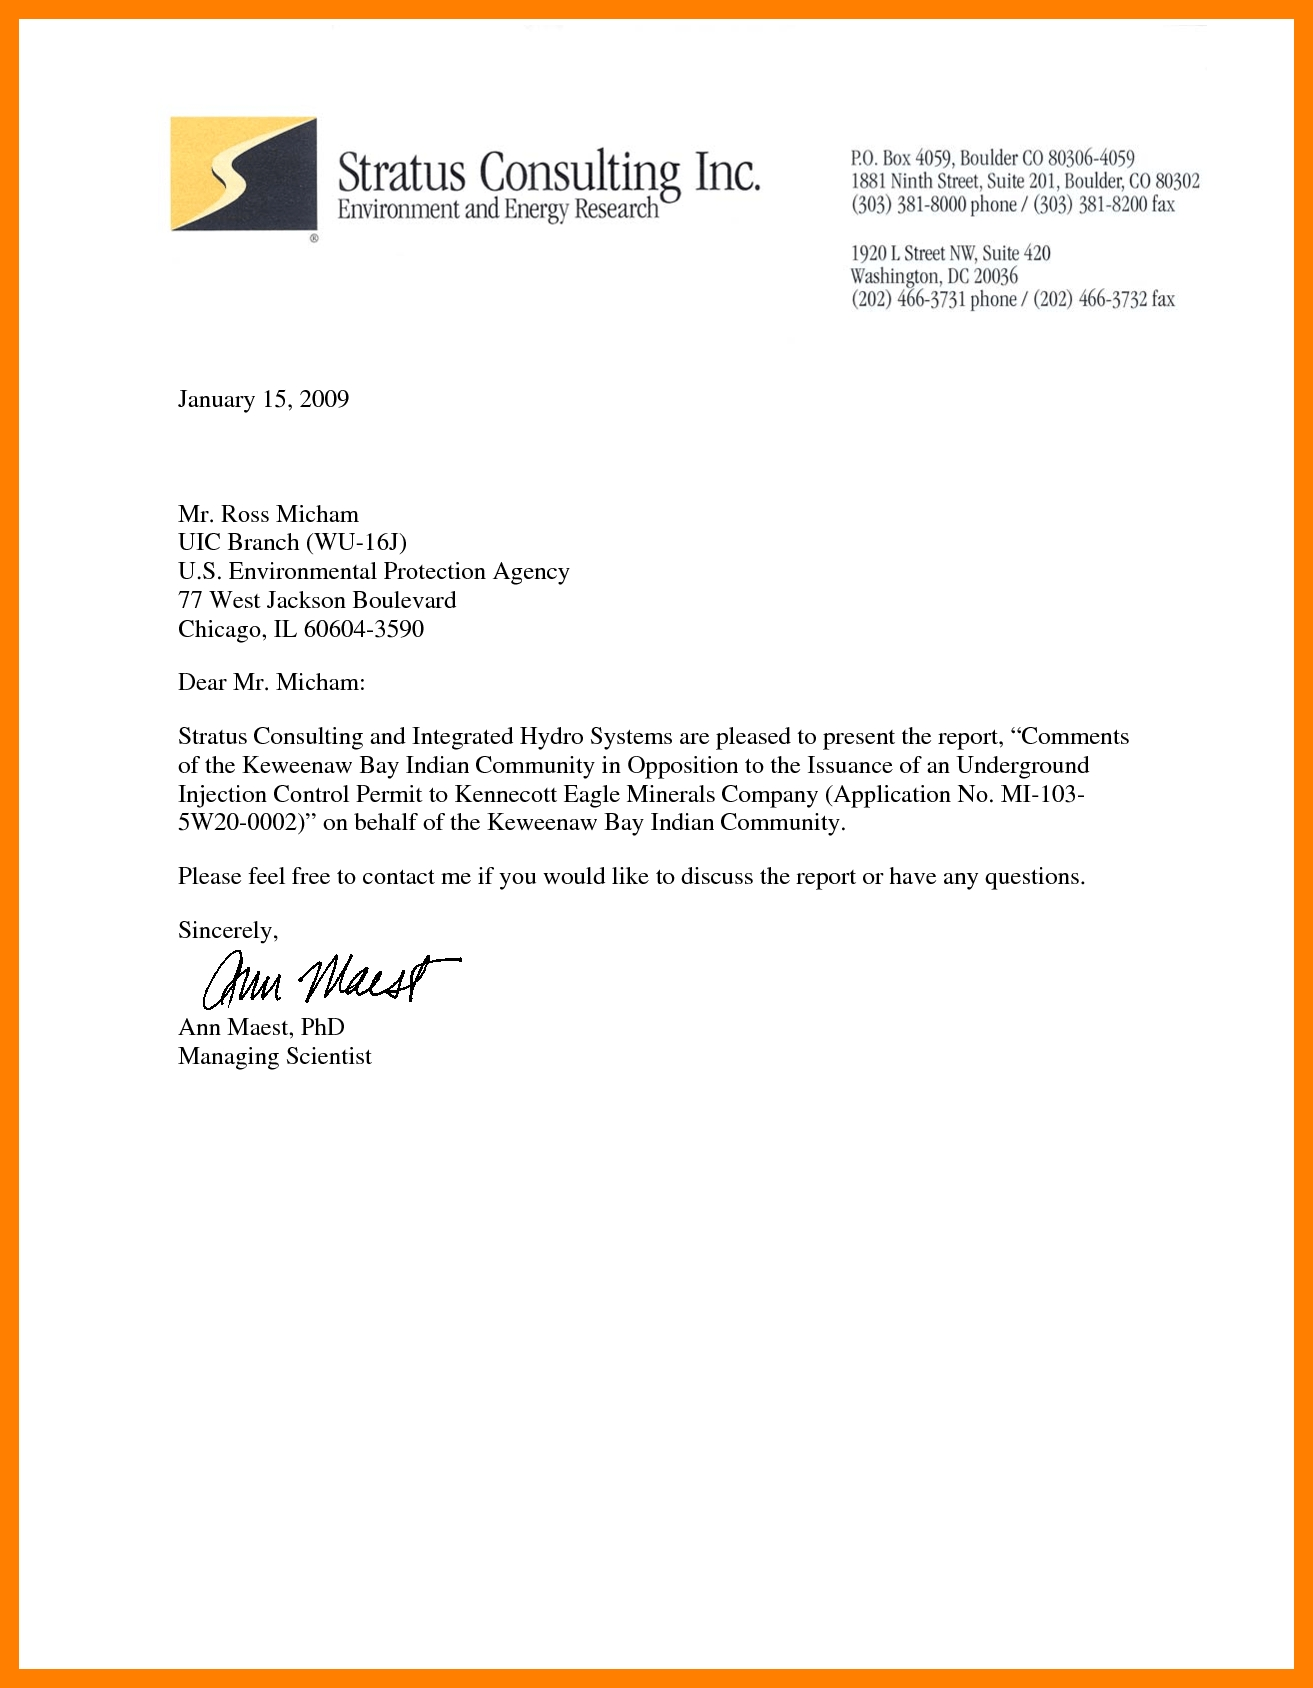 10+ Business Letter Template Microsoft Word | Report Examples with Business Letter Format Microsoft Word 21891